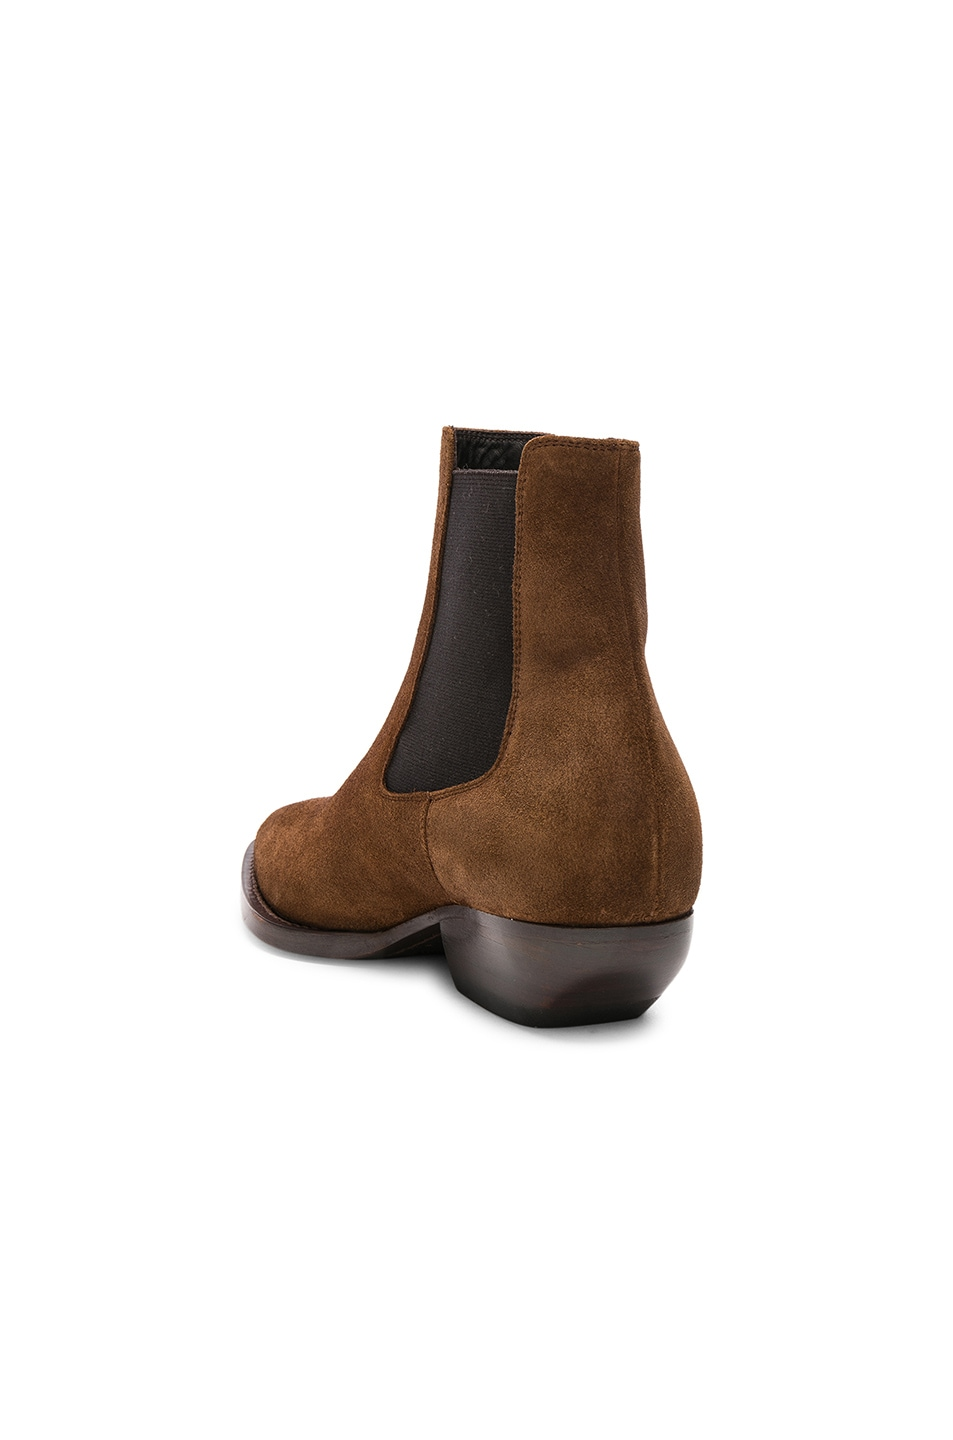 Image 3 of Saint Laurent Suede Theo Chelsea Boots in Caramel